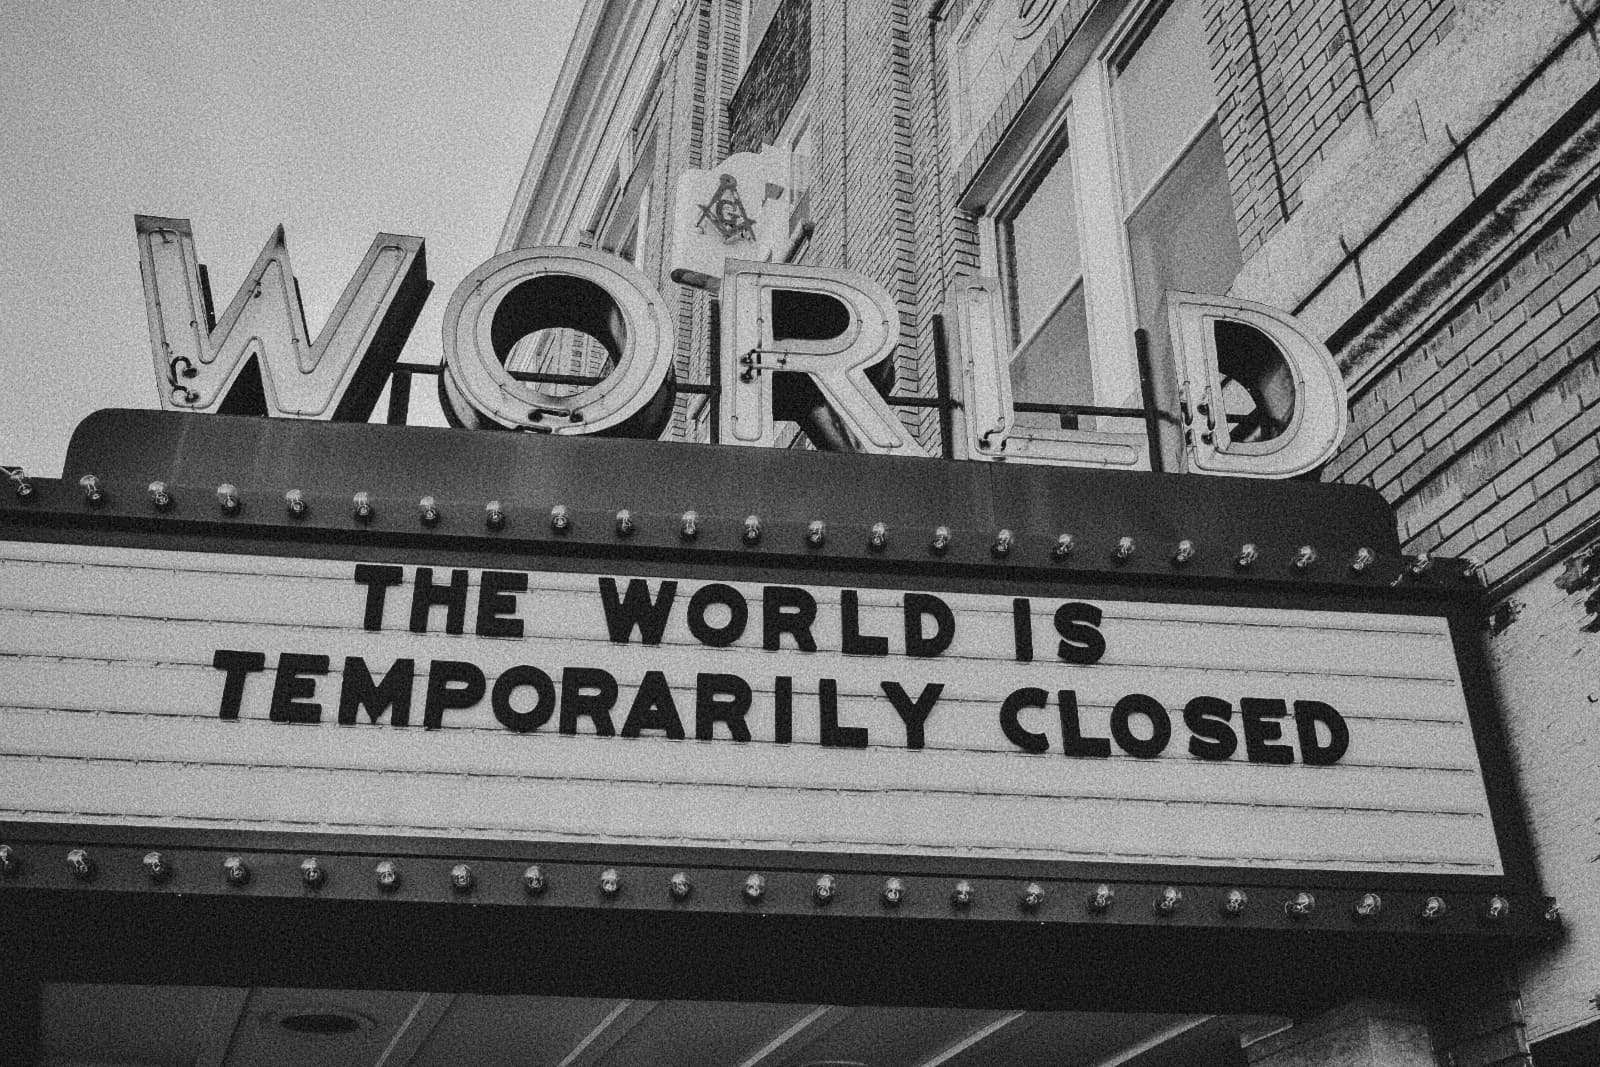 World closed. For now.